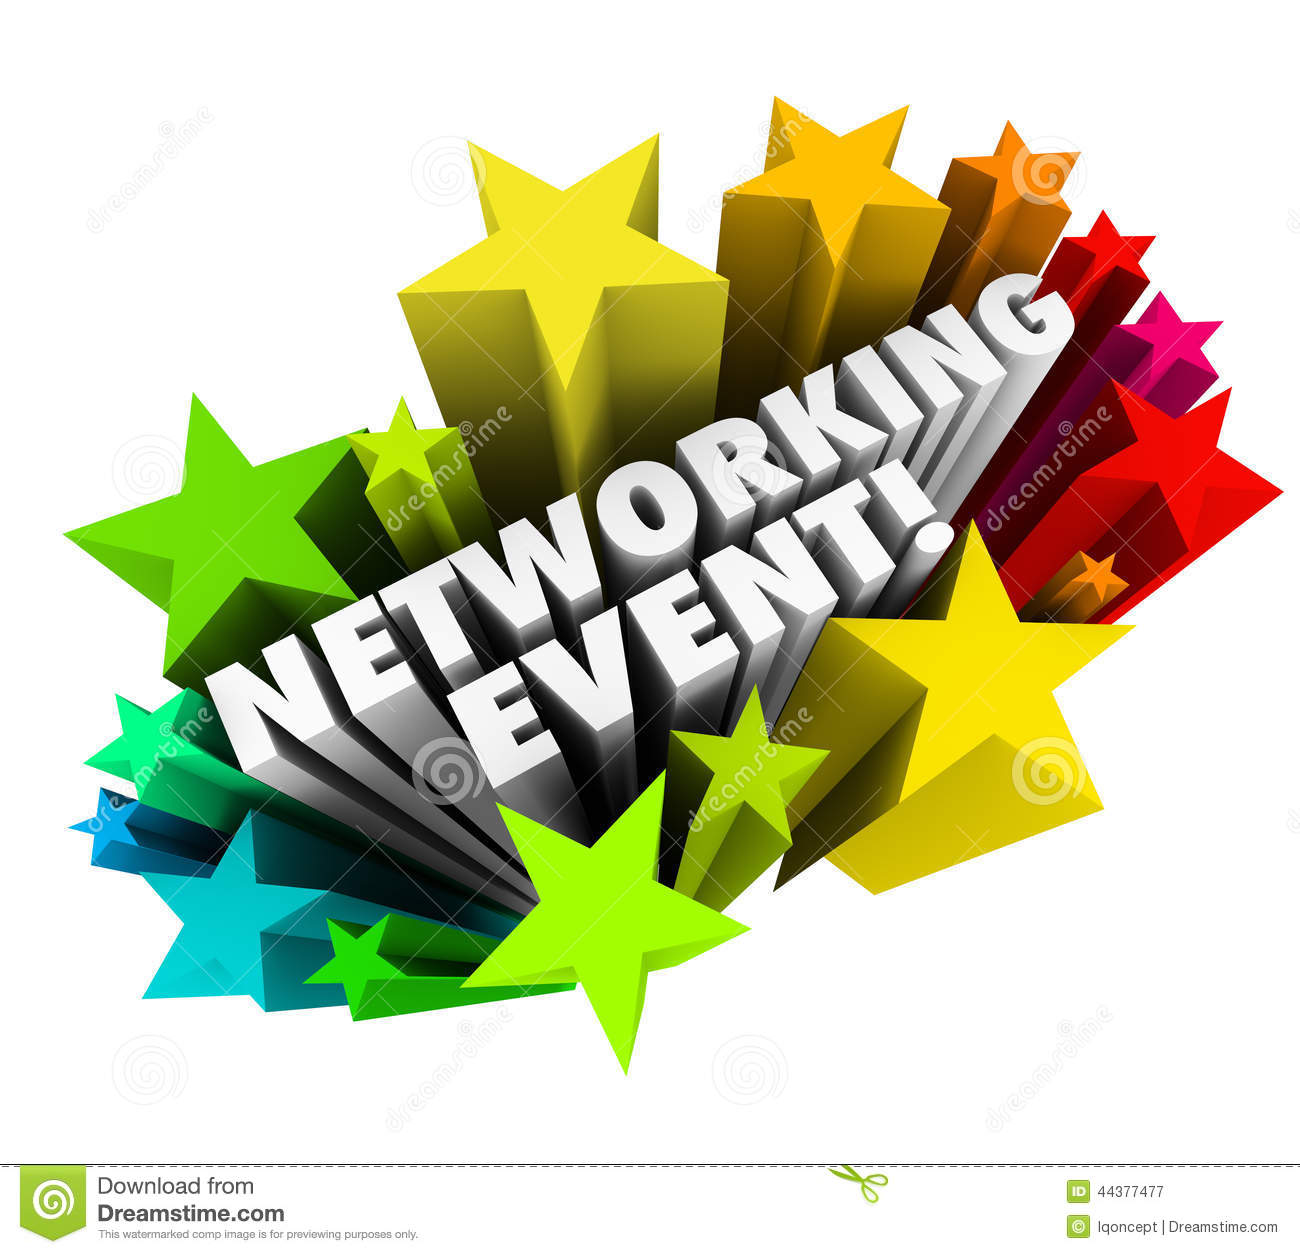 networking event stars words invitation meeting business minglin stock illustration